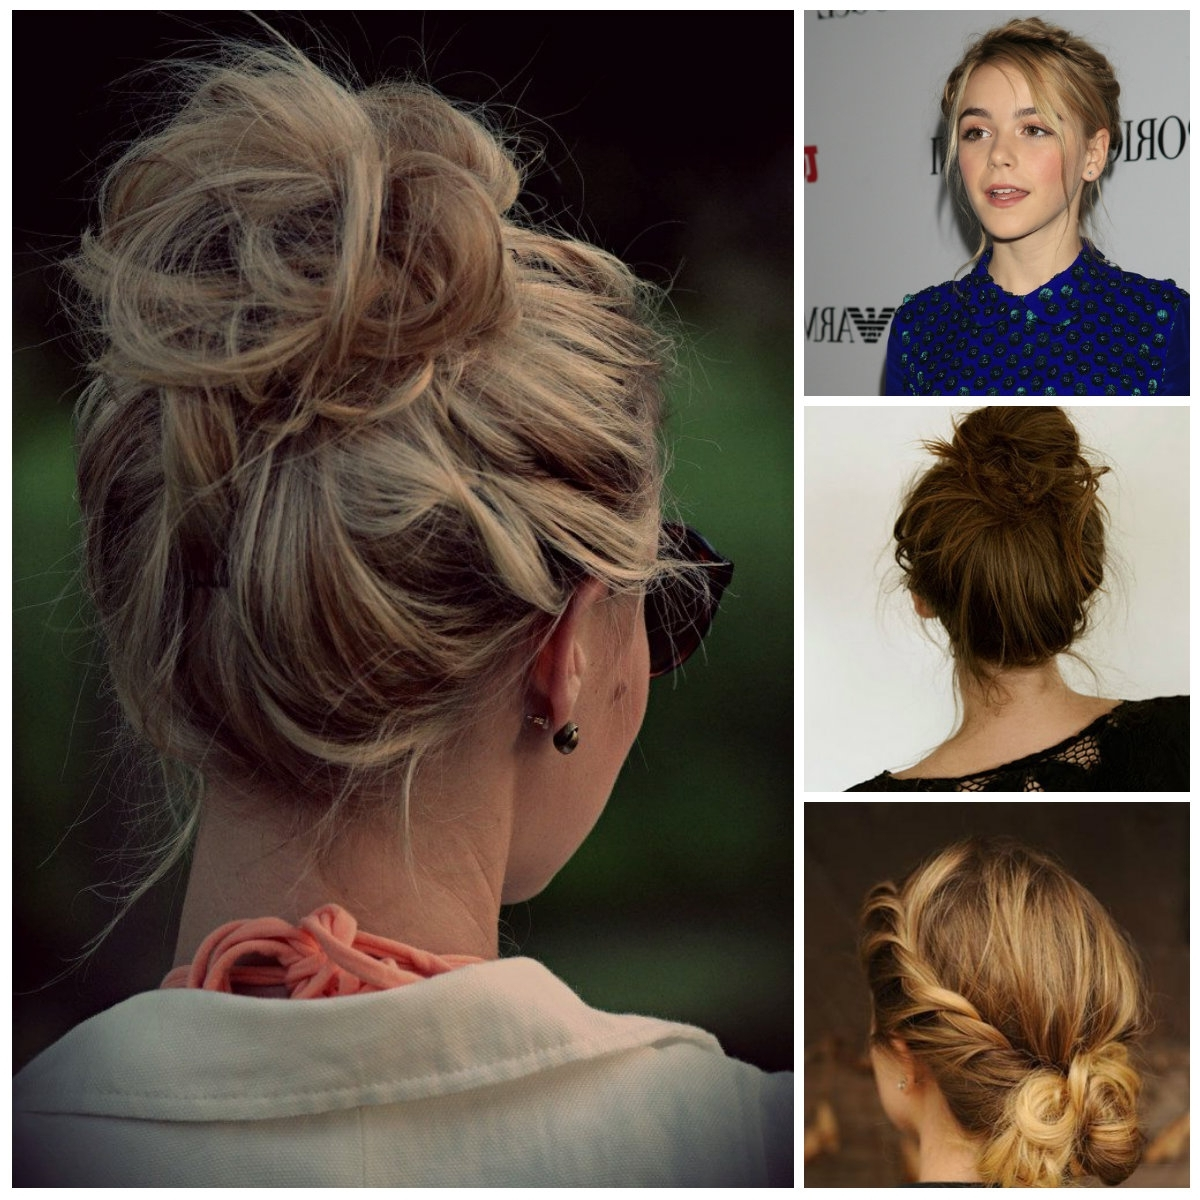 Teenage Messy Updos | Hairstyles 2018 New Haircuts And Hair Colors For Messy Updo Hairstyles (View 7 of 15)